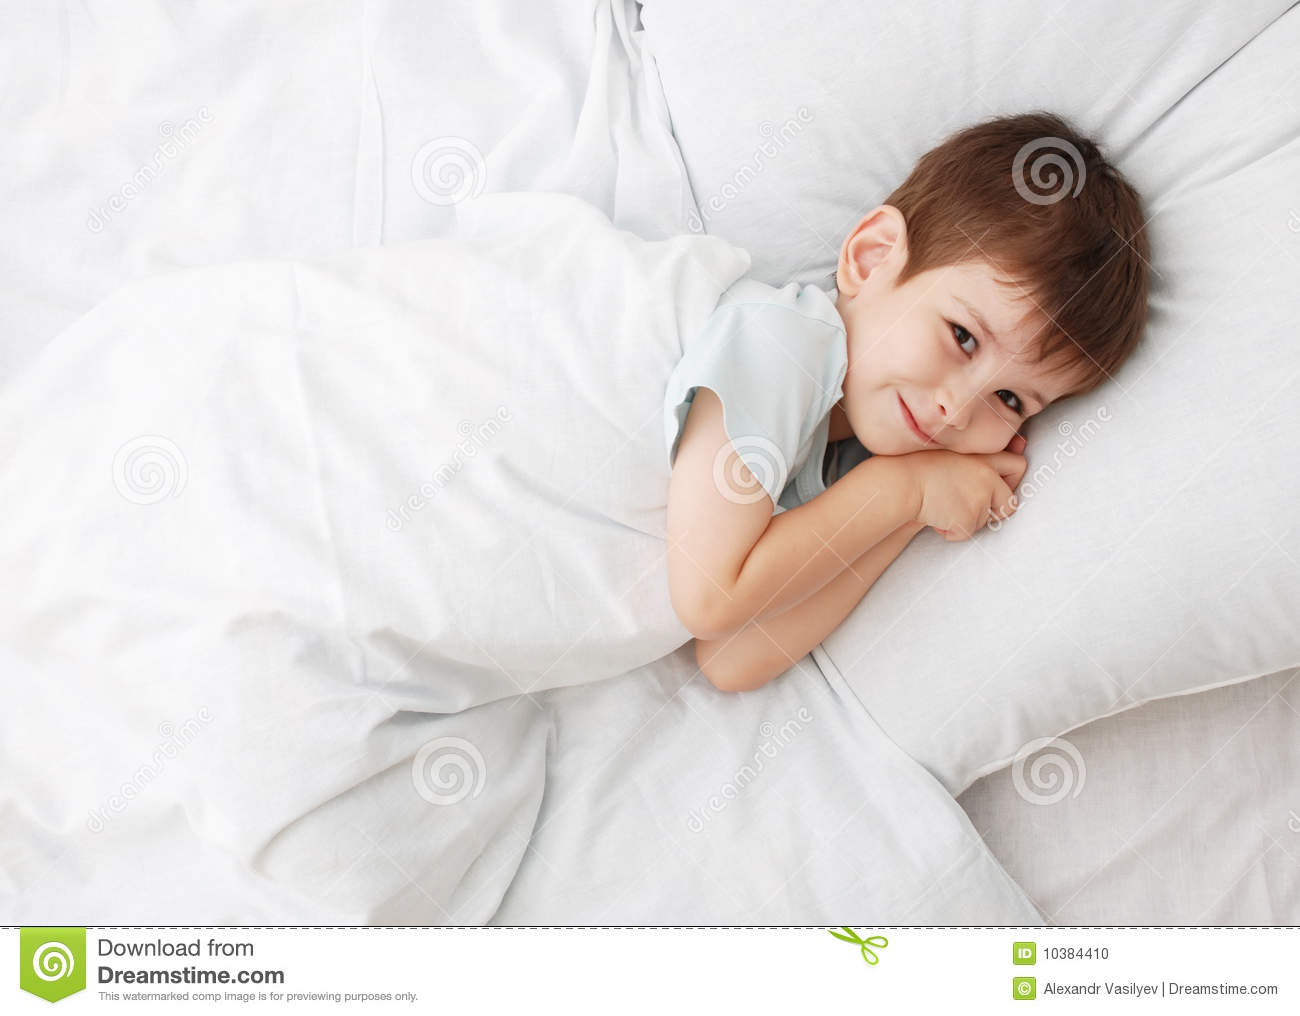 The Little Boy On A Bed Stock Photo - Image: 10384410